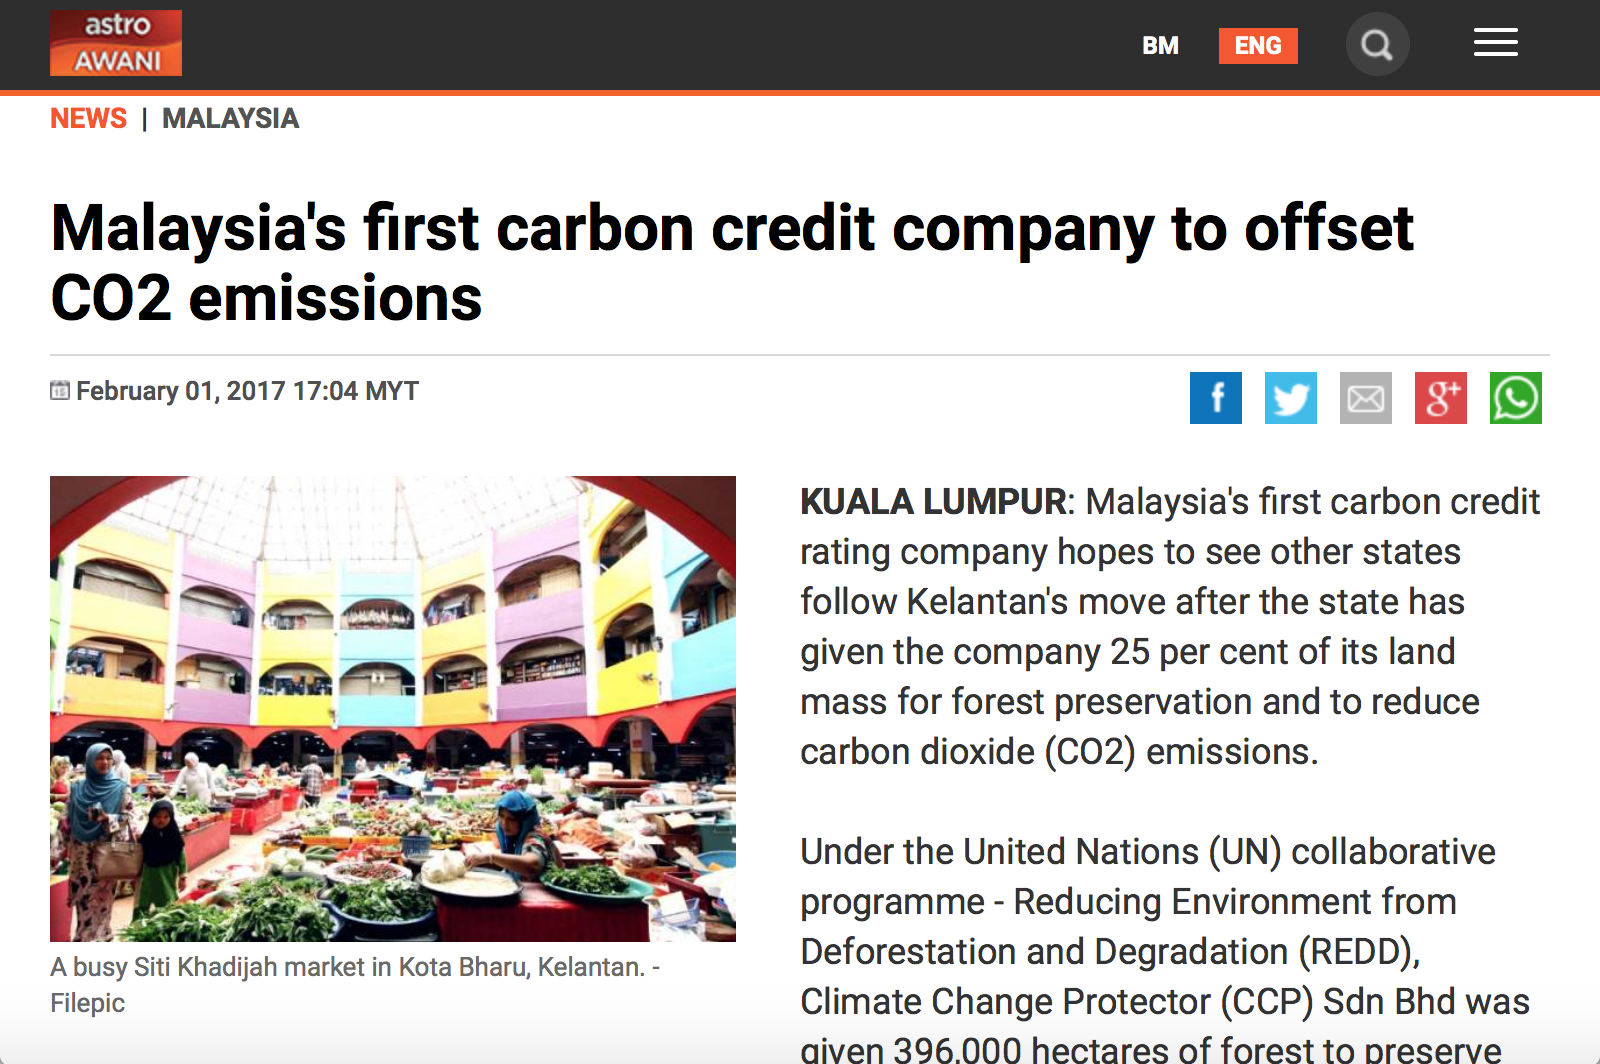 A snippet from Astro Awani's website